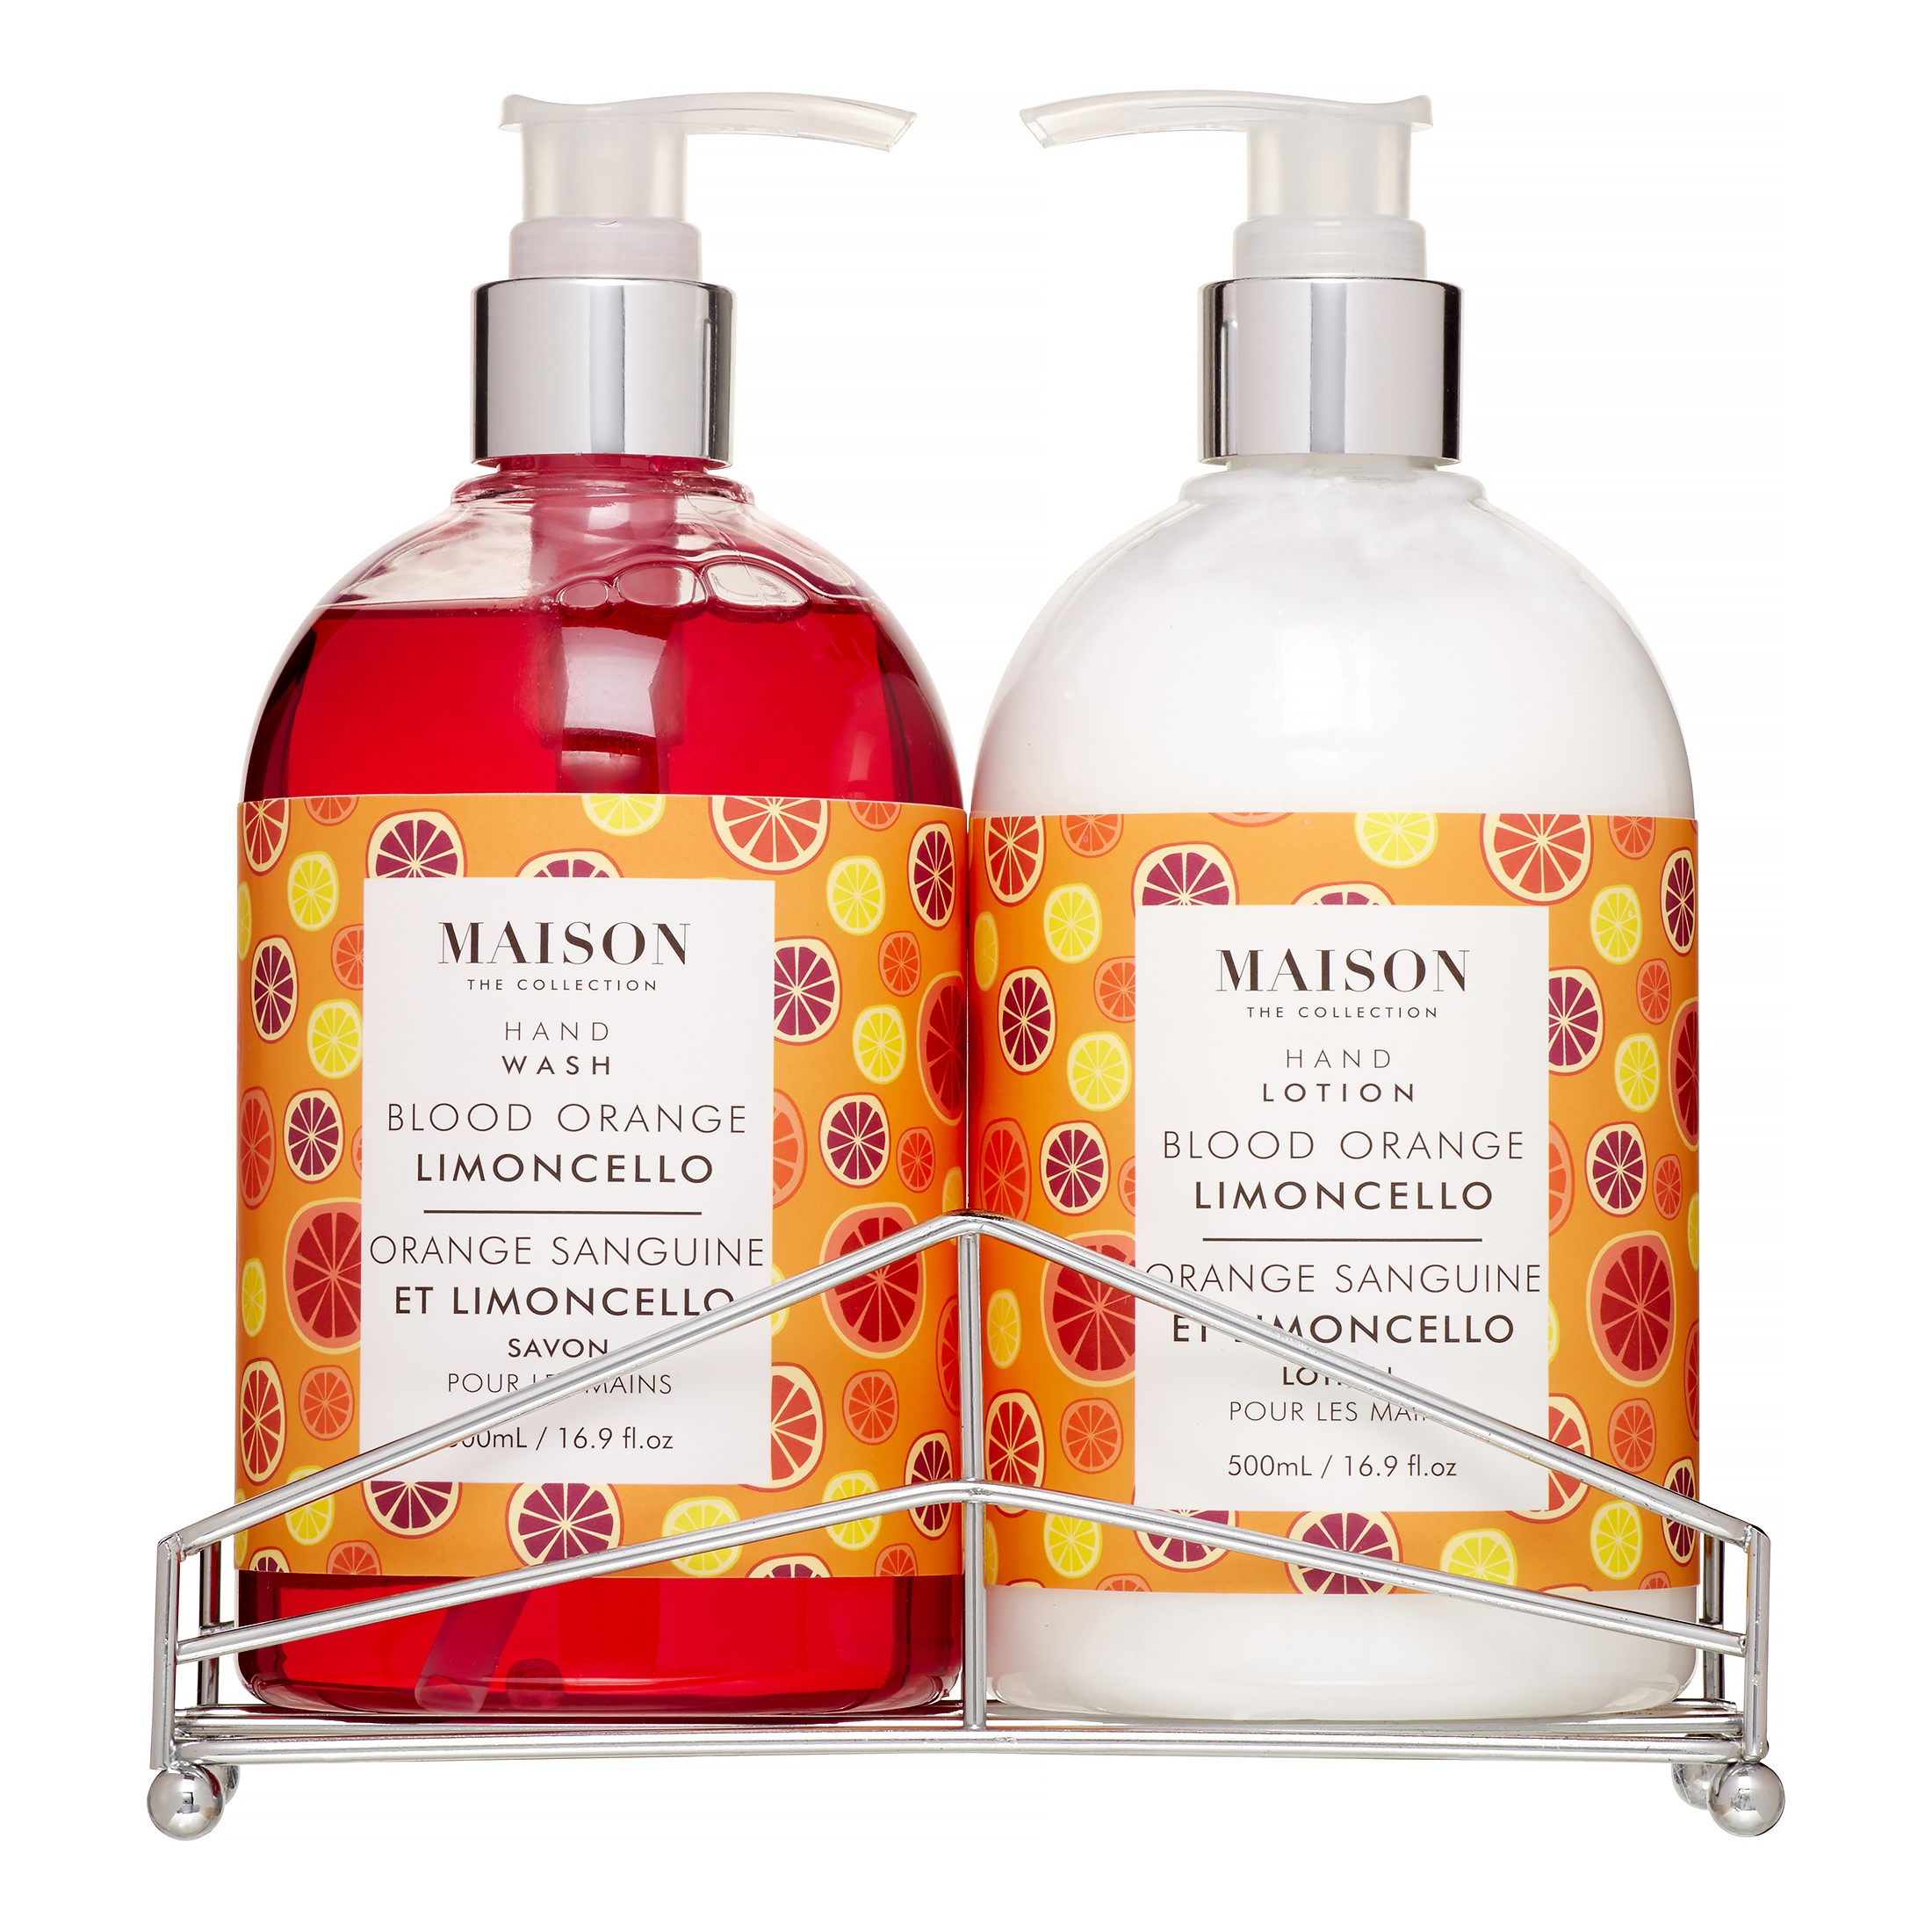 Maison Hand Wash Amp Lotion Caddy Set Blood Orange